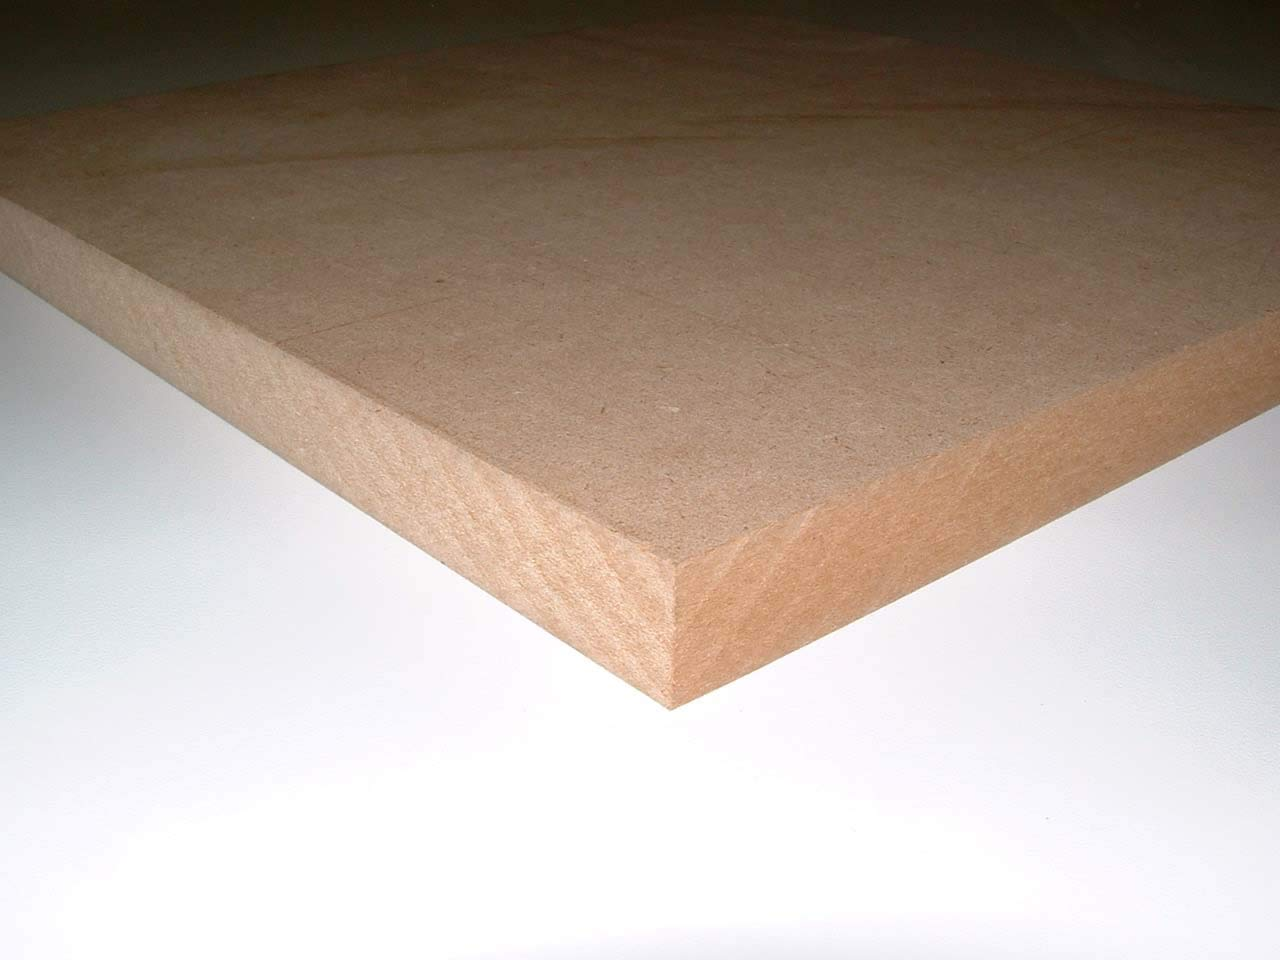 On sale 6MM MDF We OFFer at cheap prices off-cuts Trust - Large perfect FR or Box for lasers